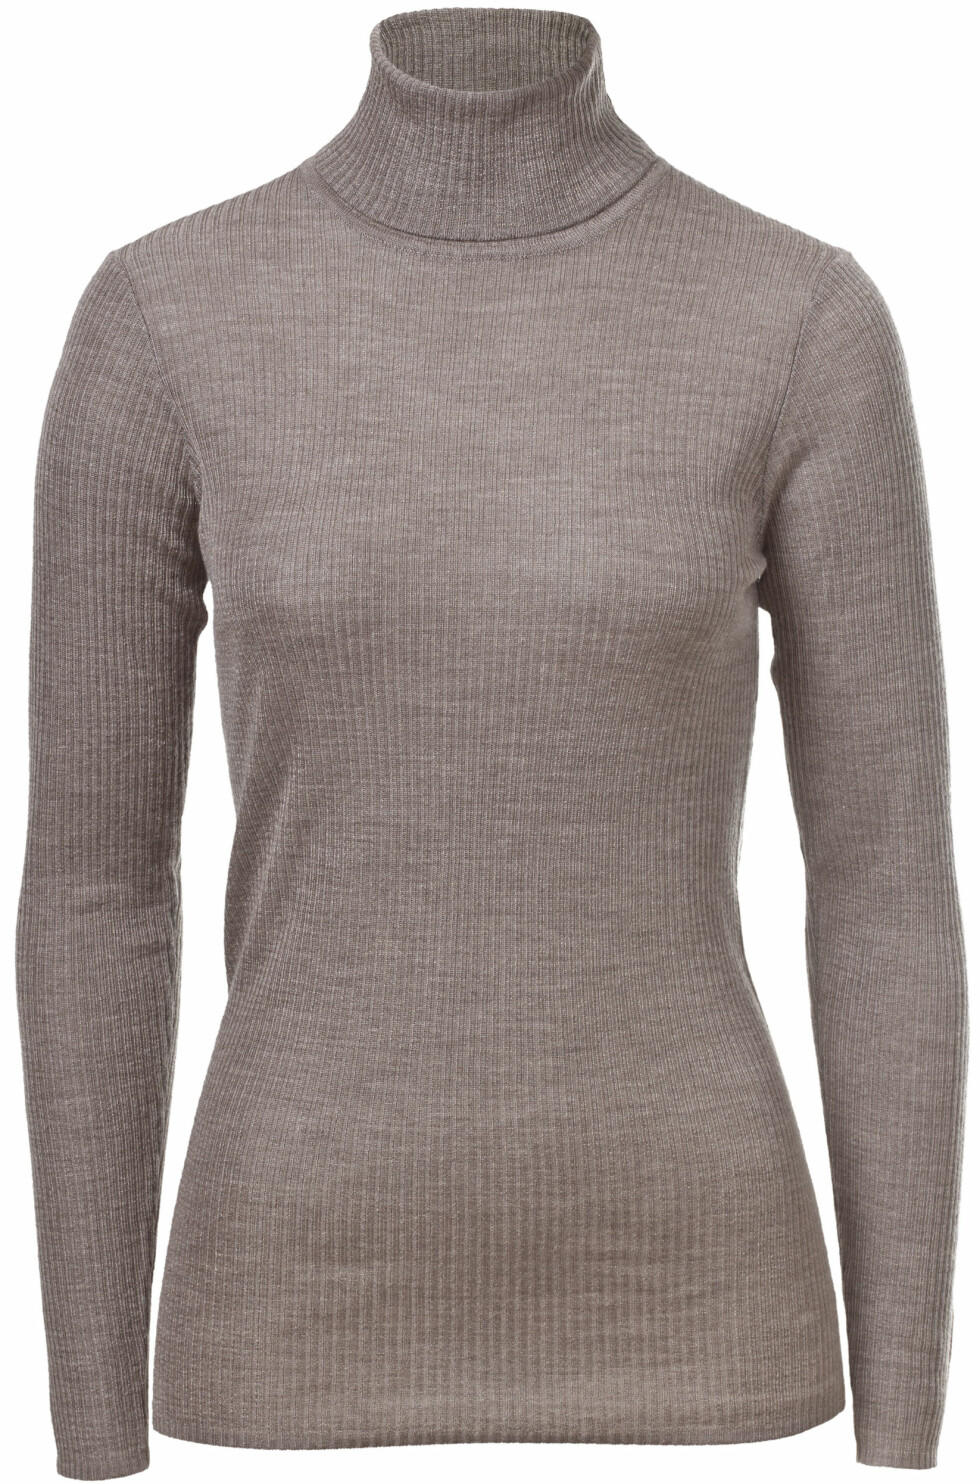 Ulltrøye fra Pierre Robert |450,-| https://www.pierrerobert.no/no_NO/dame-topper-ulltopper/turtleneck-ullgenser/HA62.html?dwvar_HA62_color=beige%20melange&dwvar_HA62_size=s%2Fm&cgid=Womens_Wool_Long_Sleeves#start=1